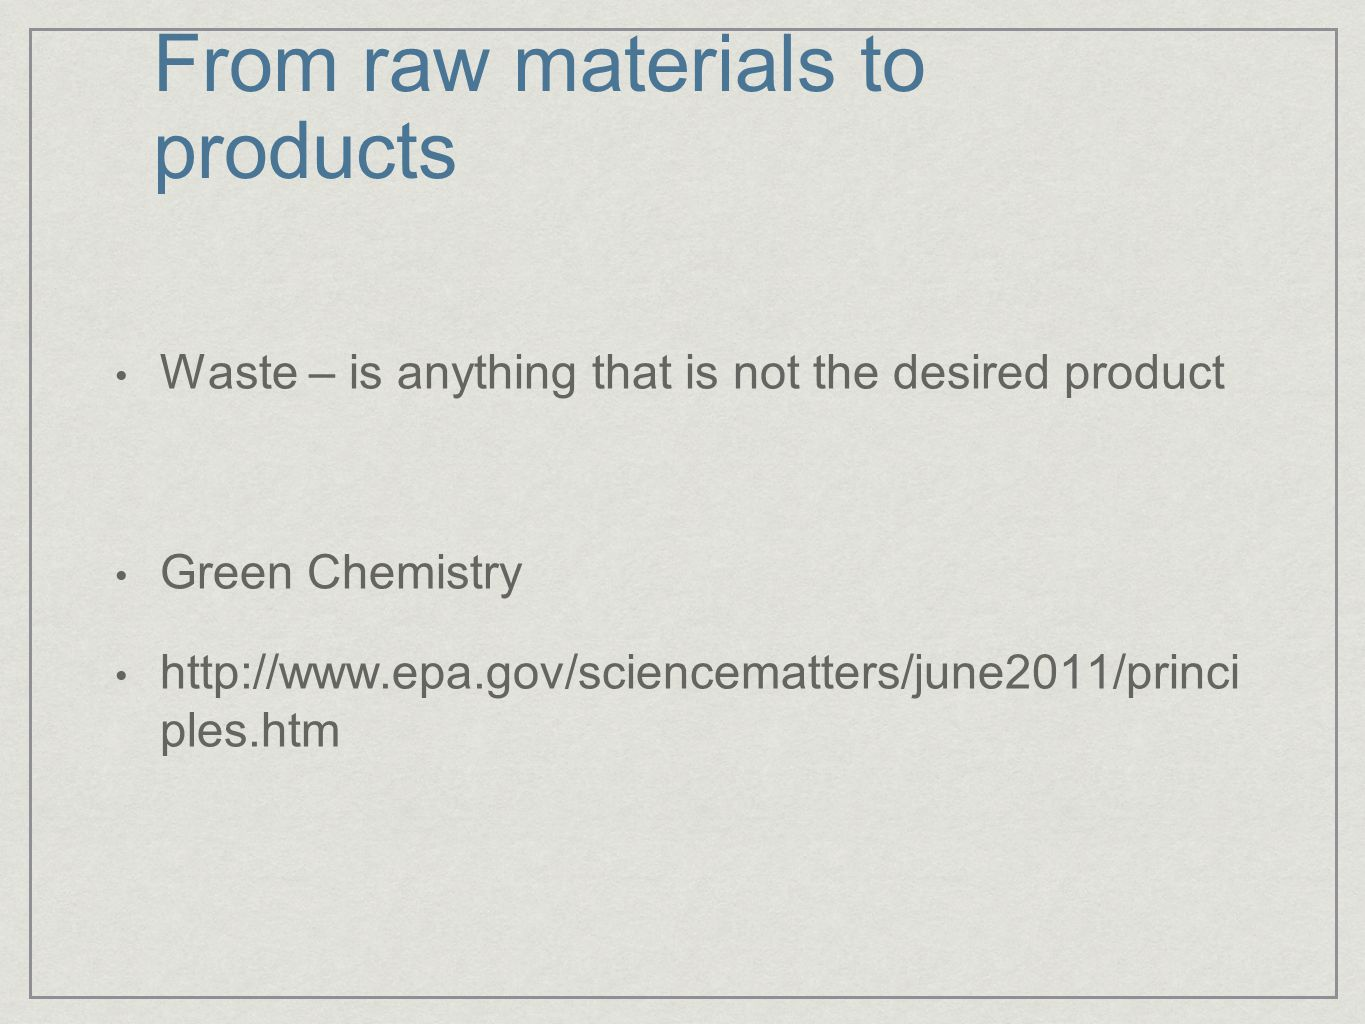 From raw materials to products